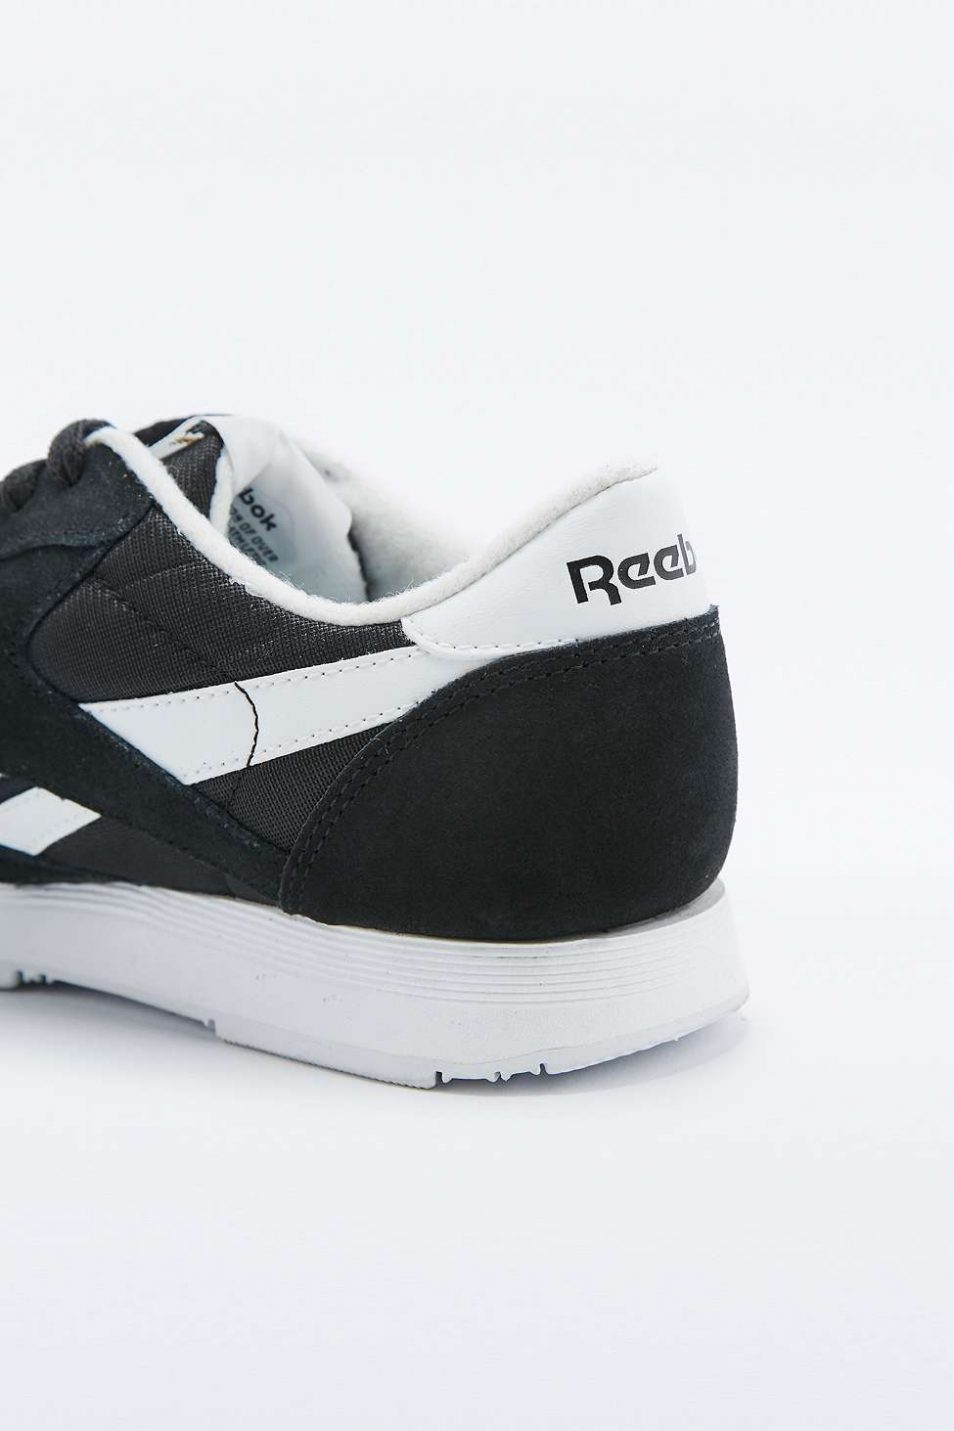 Reebok Classic Black and White Trainers 4 1